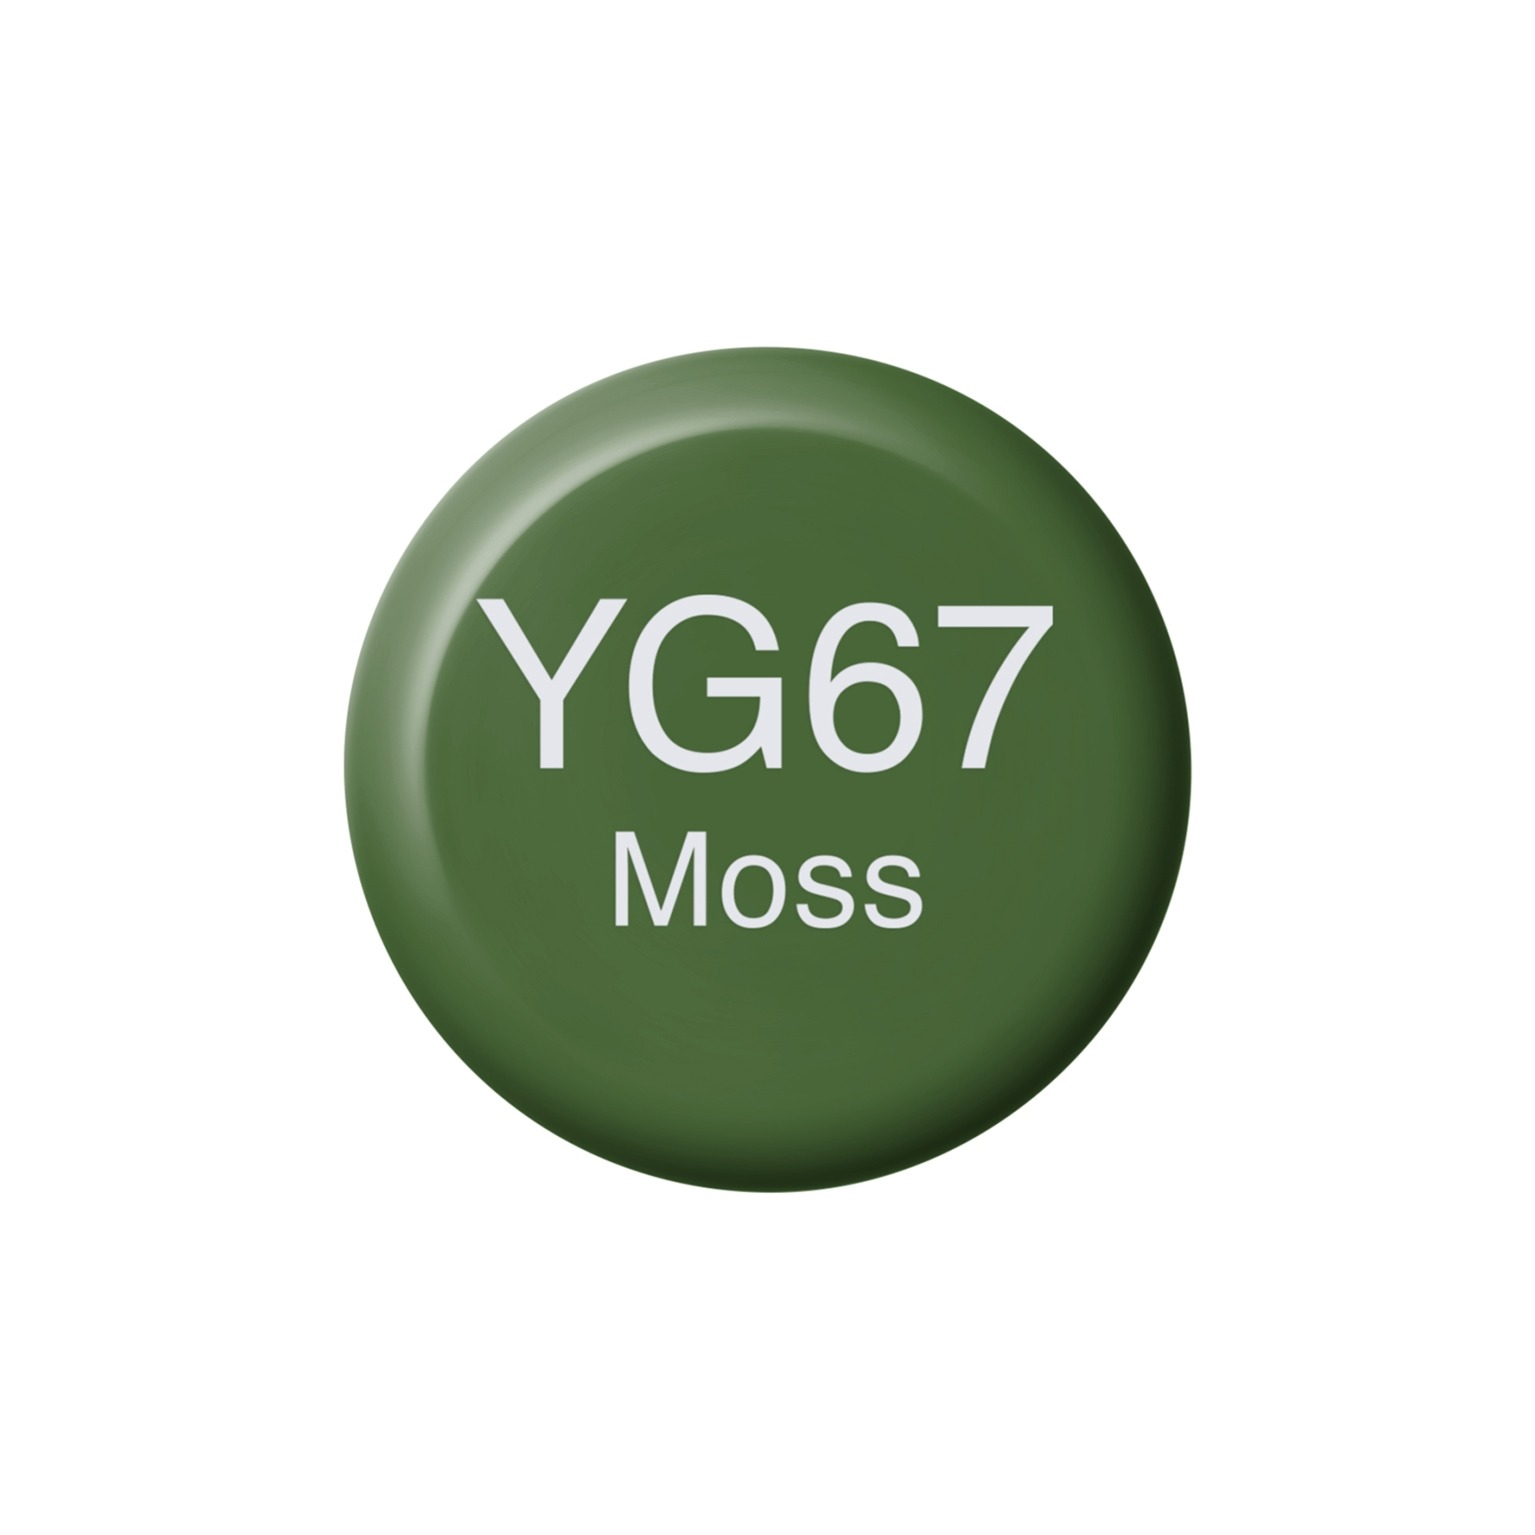 0032281_copic-ink-yg67-moss-12ml